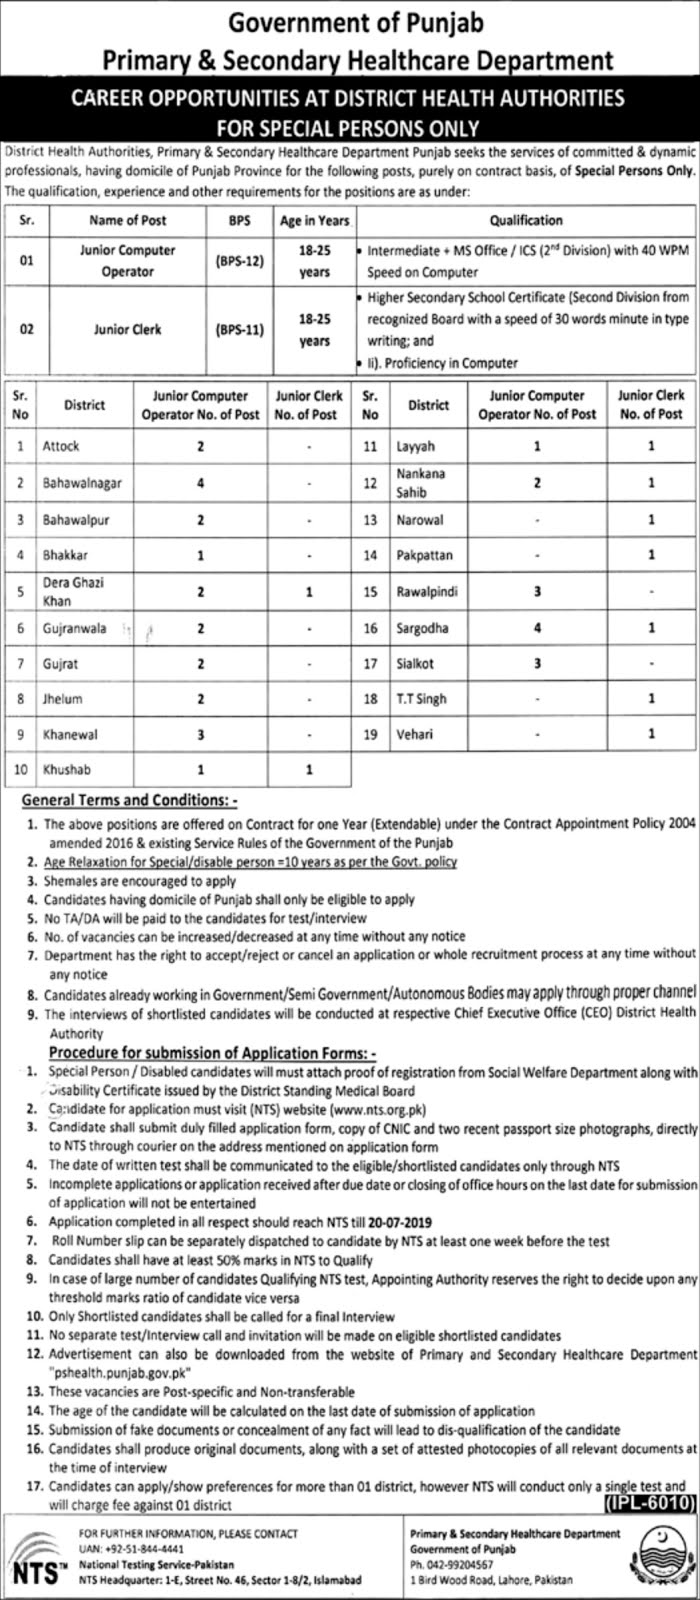 jobs in primary and secondary healthcare department 2019,primary and secondary healthcare department jobs,primary and secondary healthcare department punjab jobs 2019,healthcare department jobs 2019,health department jobs 2019,primary and secondary healthcare department punjab,healthcare department jobs,jobs in health department 2019,primary and secondary healthcare department jobs 2019